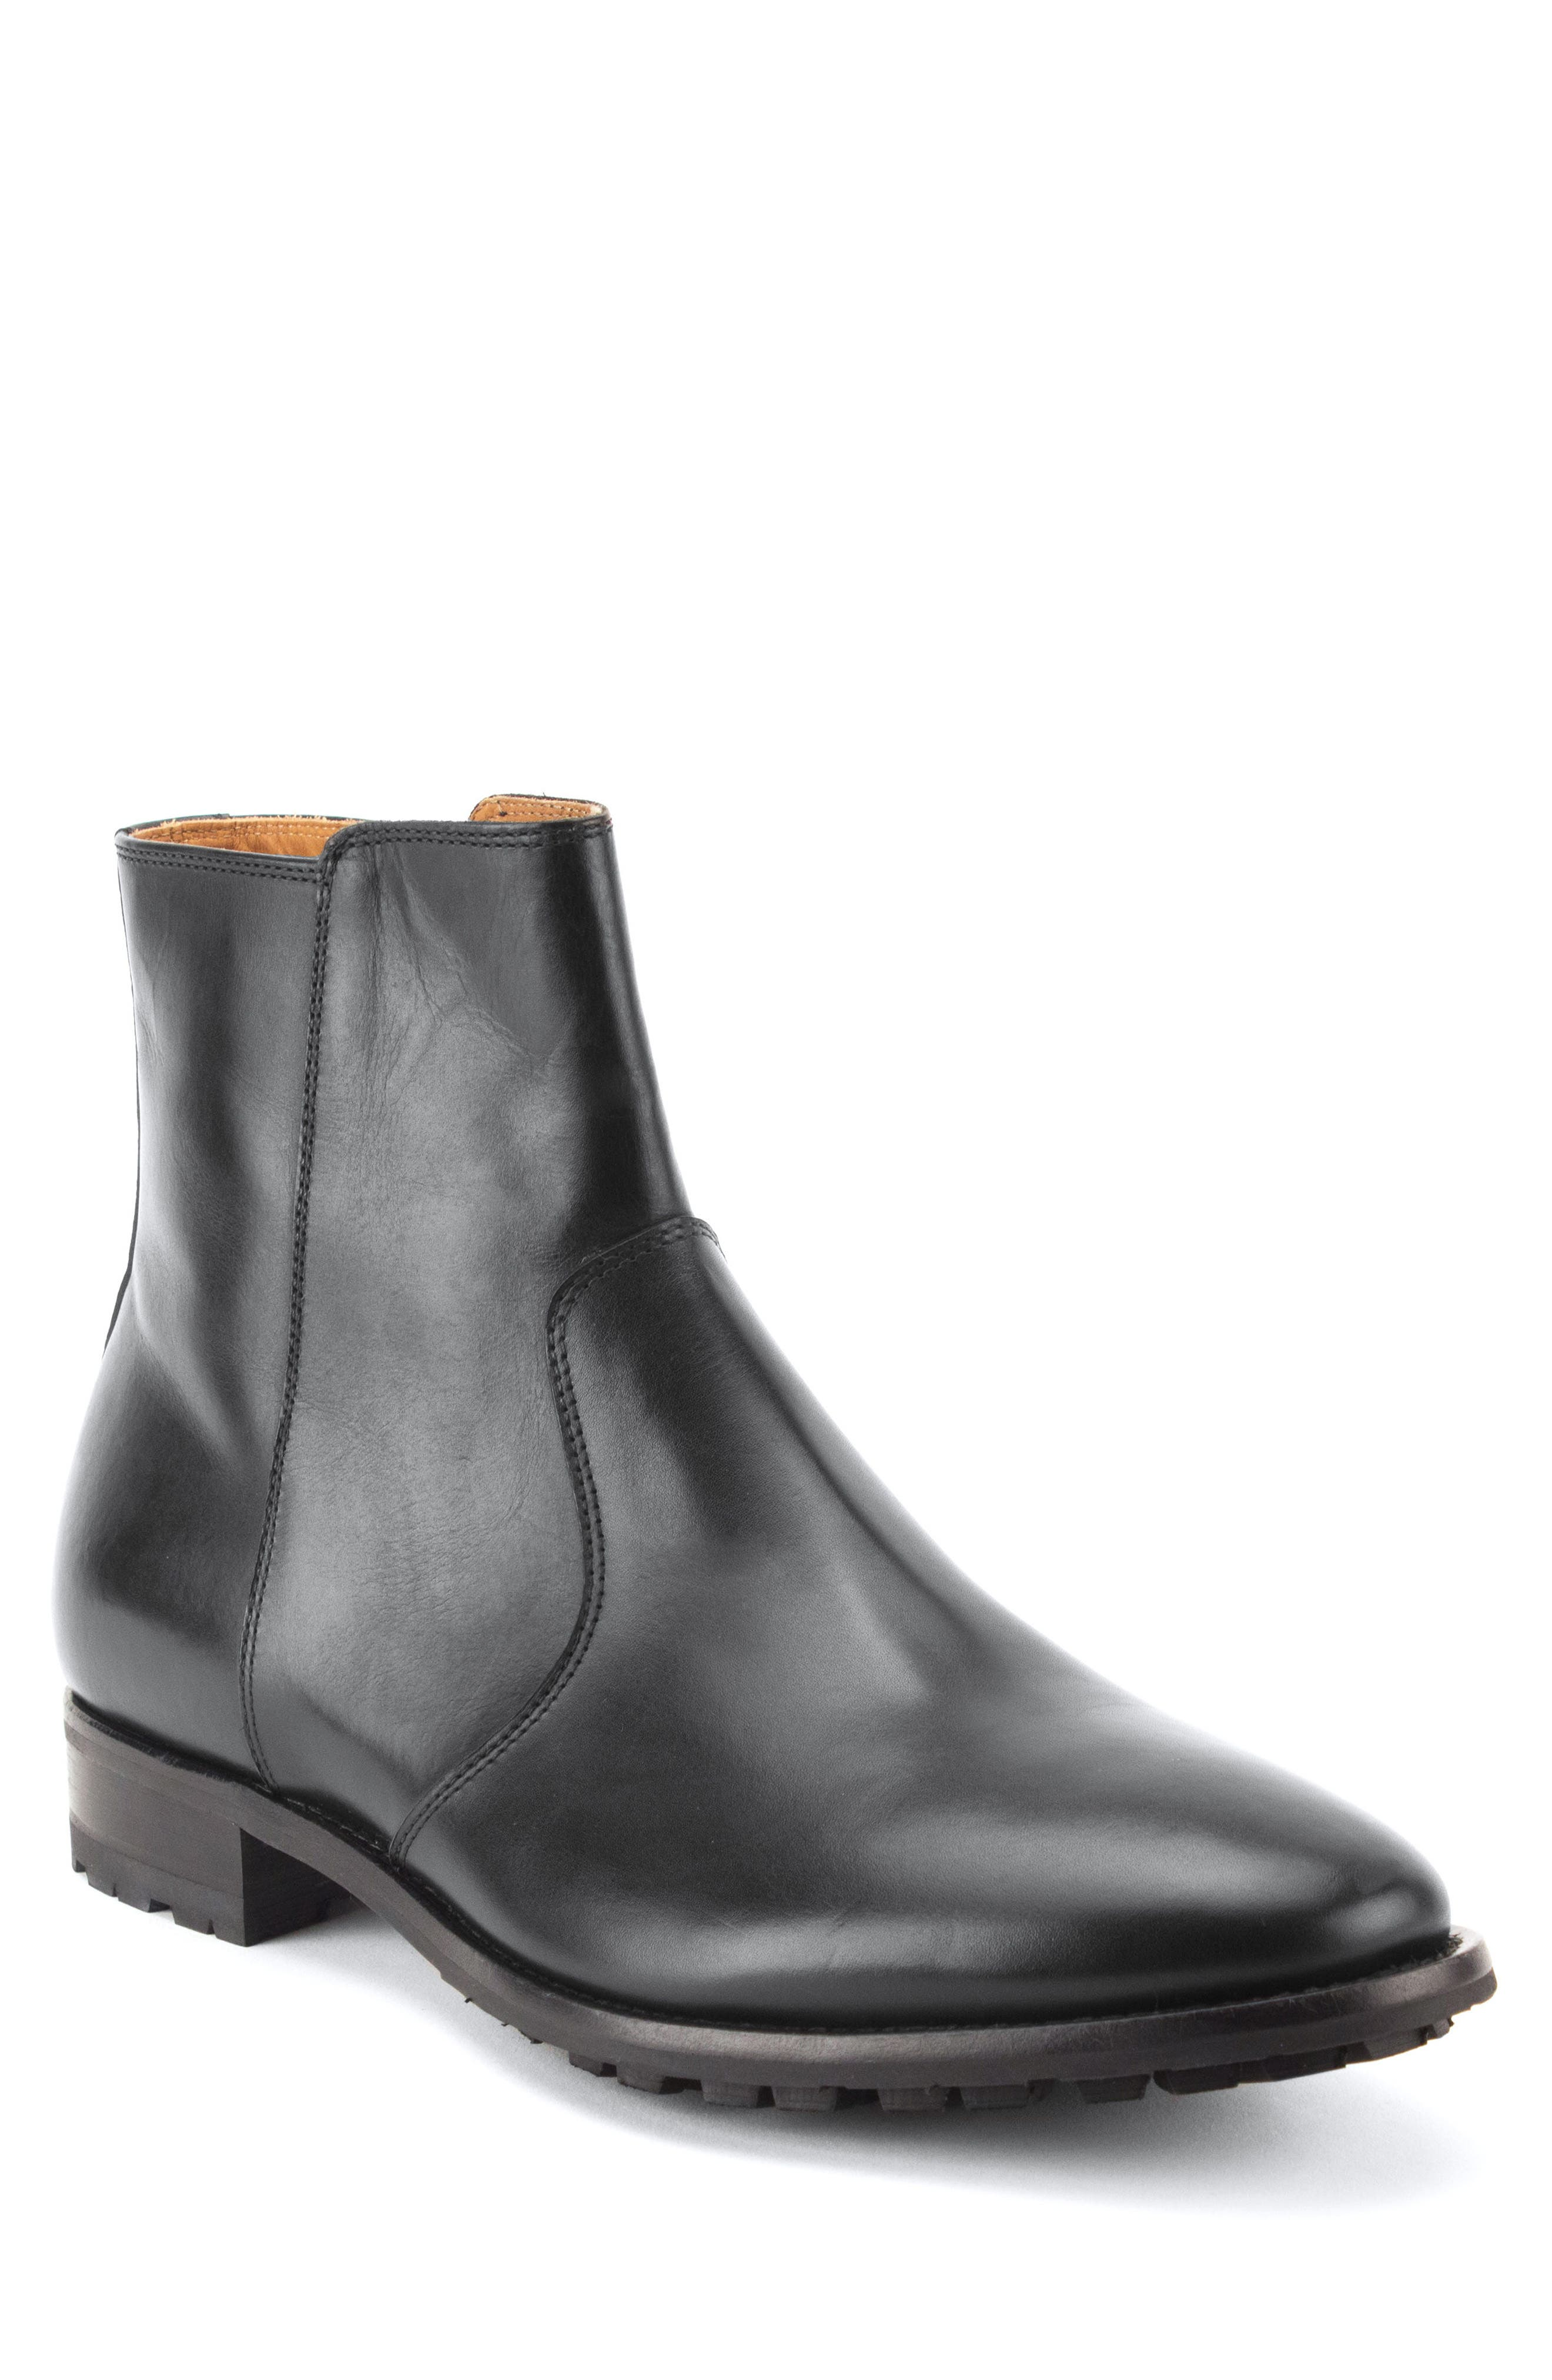 Roberts Zip Boot,                             Main thumbnail 1, color,                             BLACK LEATHER